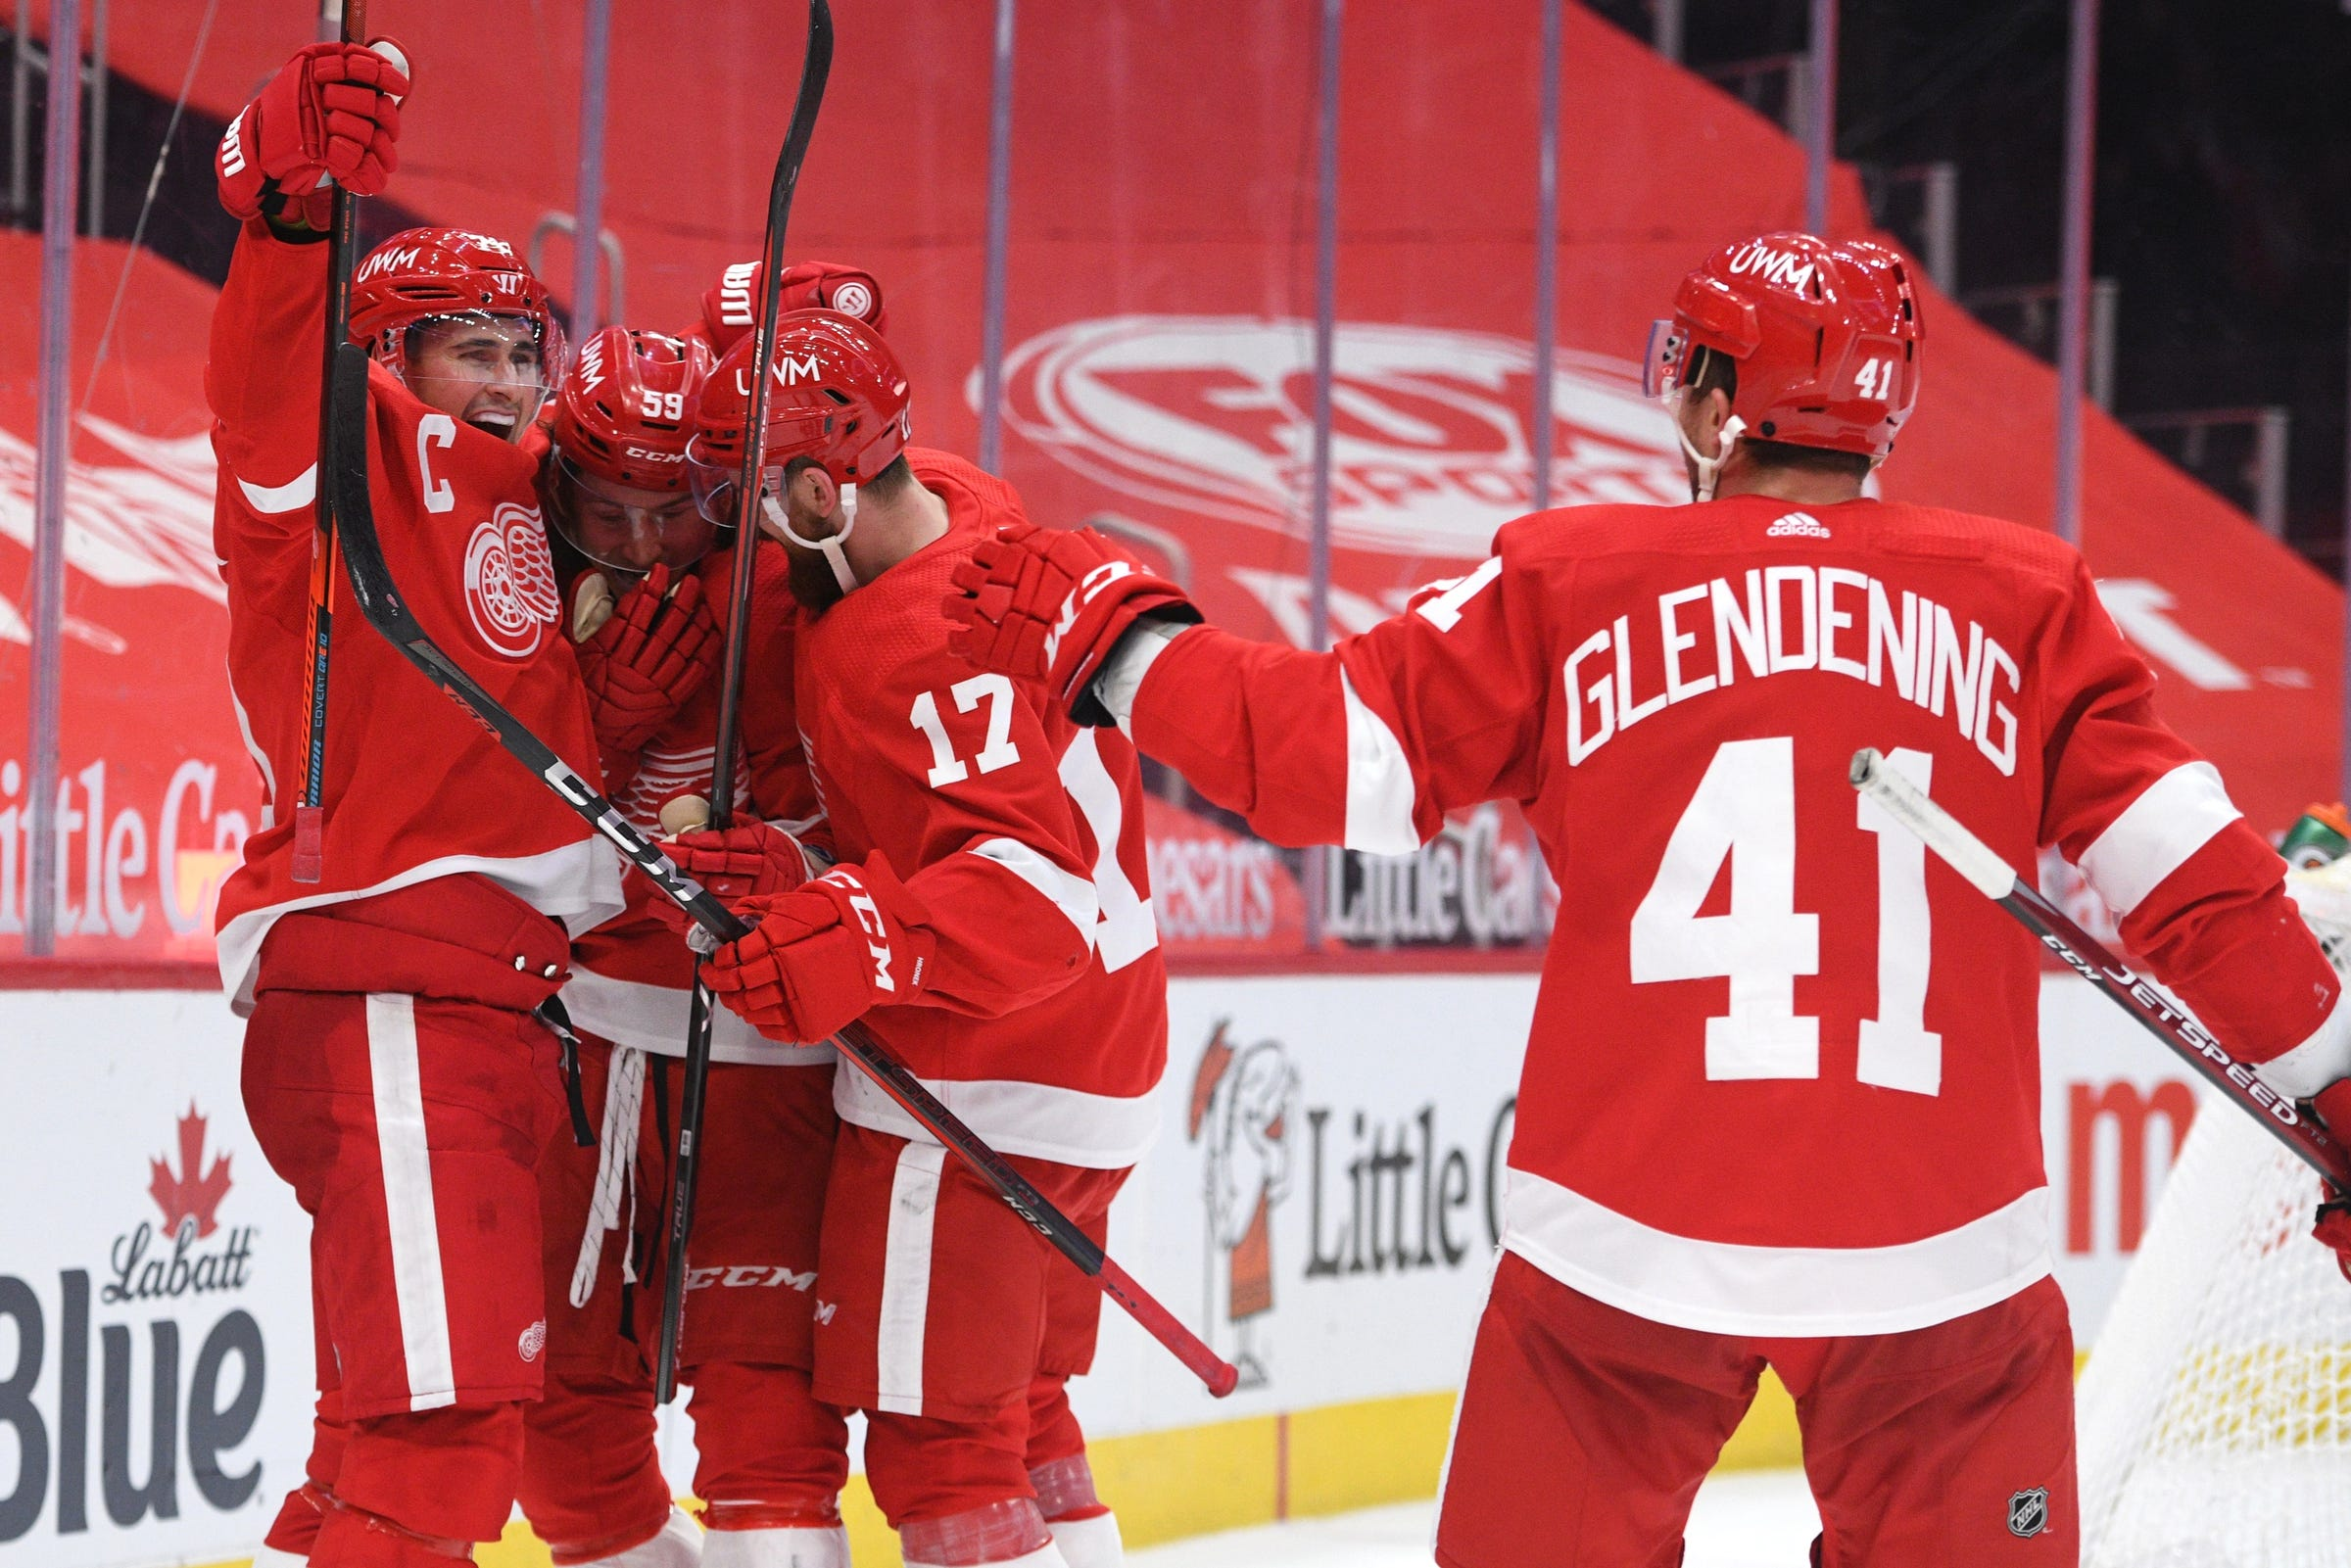 Tyler Bertuzzi scores in OT to lift Detroit Red Wings over Blue Jackets